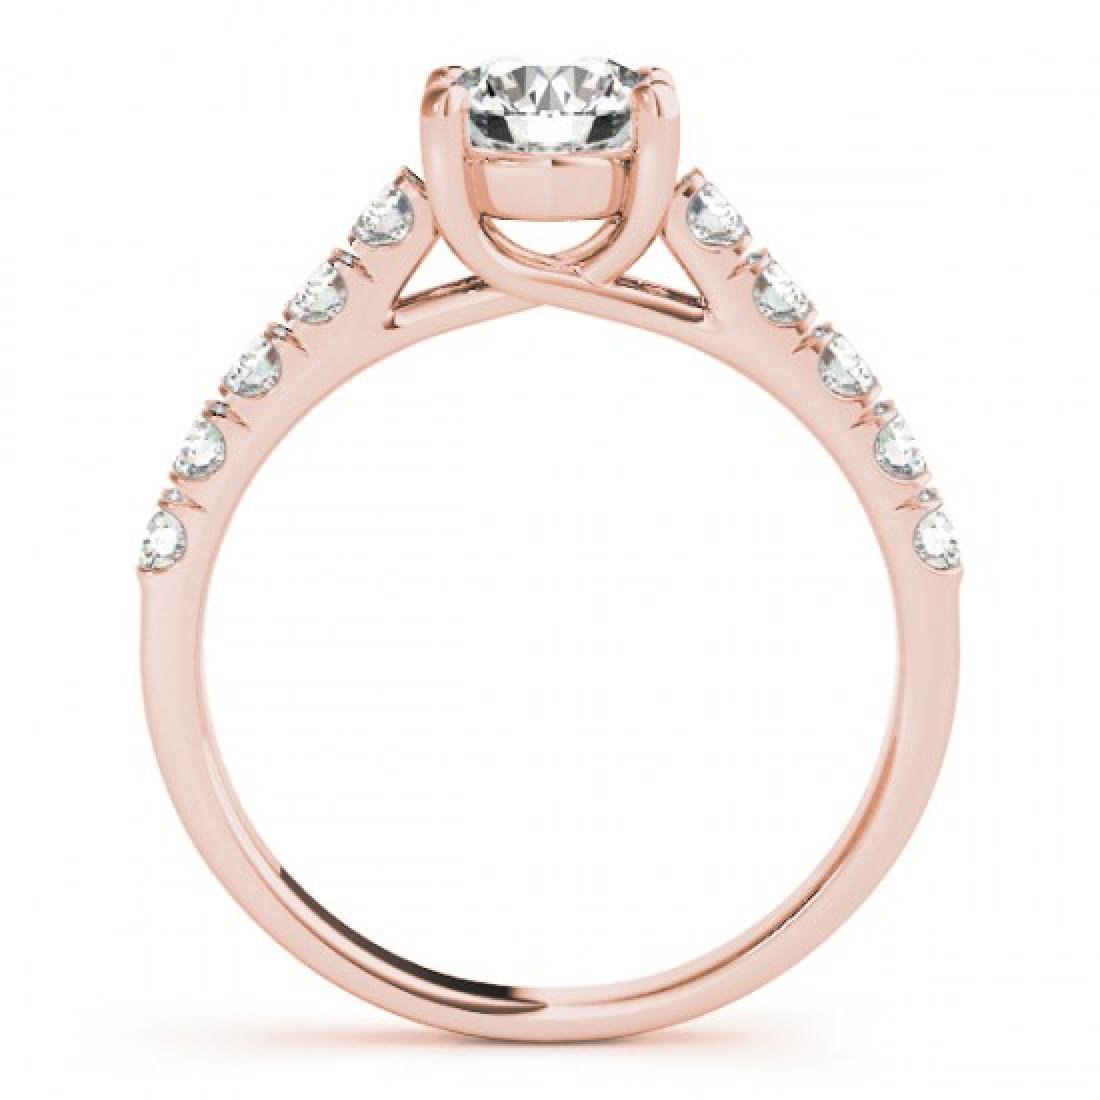 2.1 CTW Certified VS/SI Diamond Solitaire Ring 14K Rose - 2